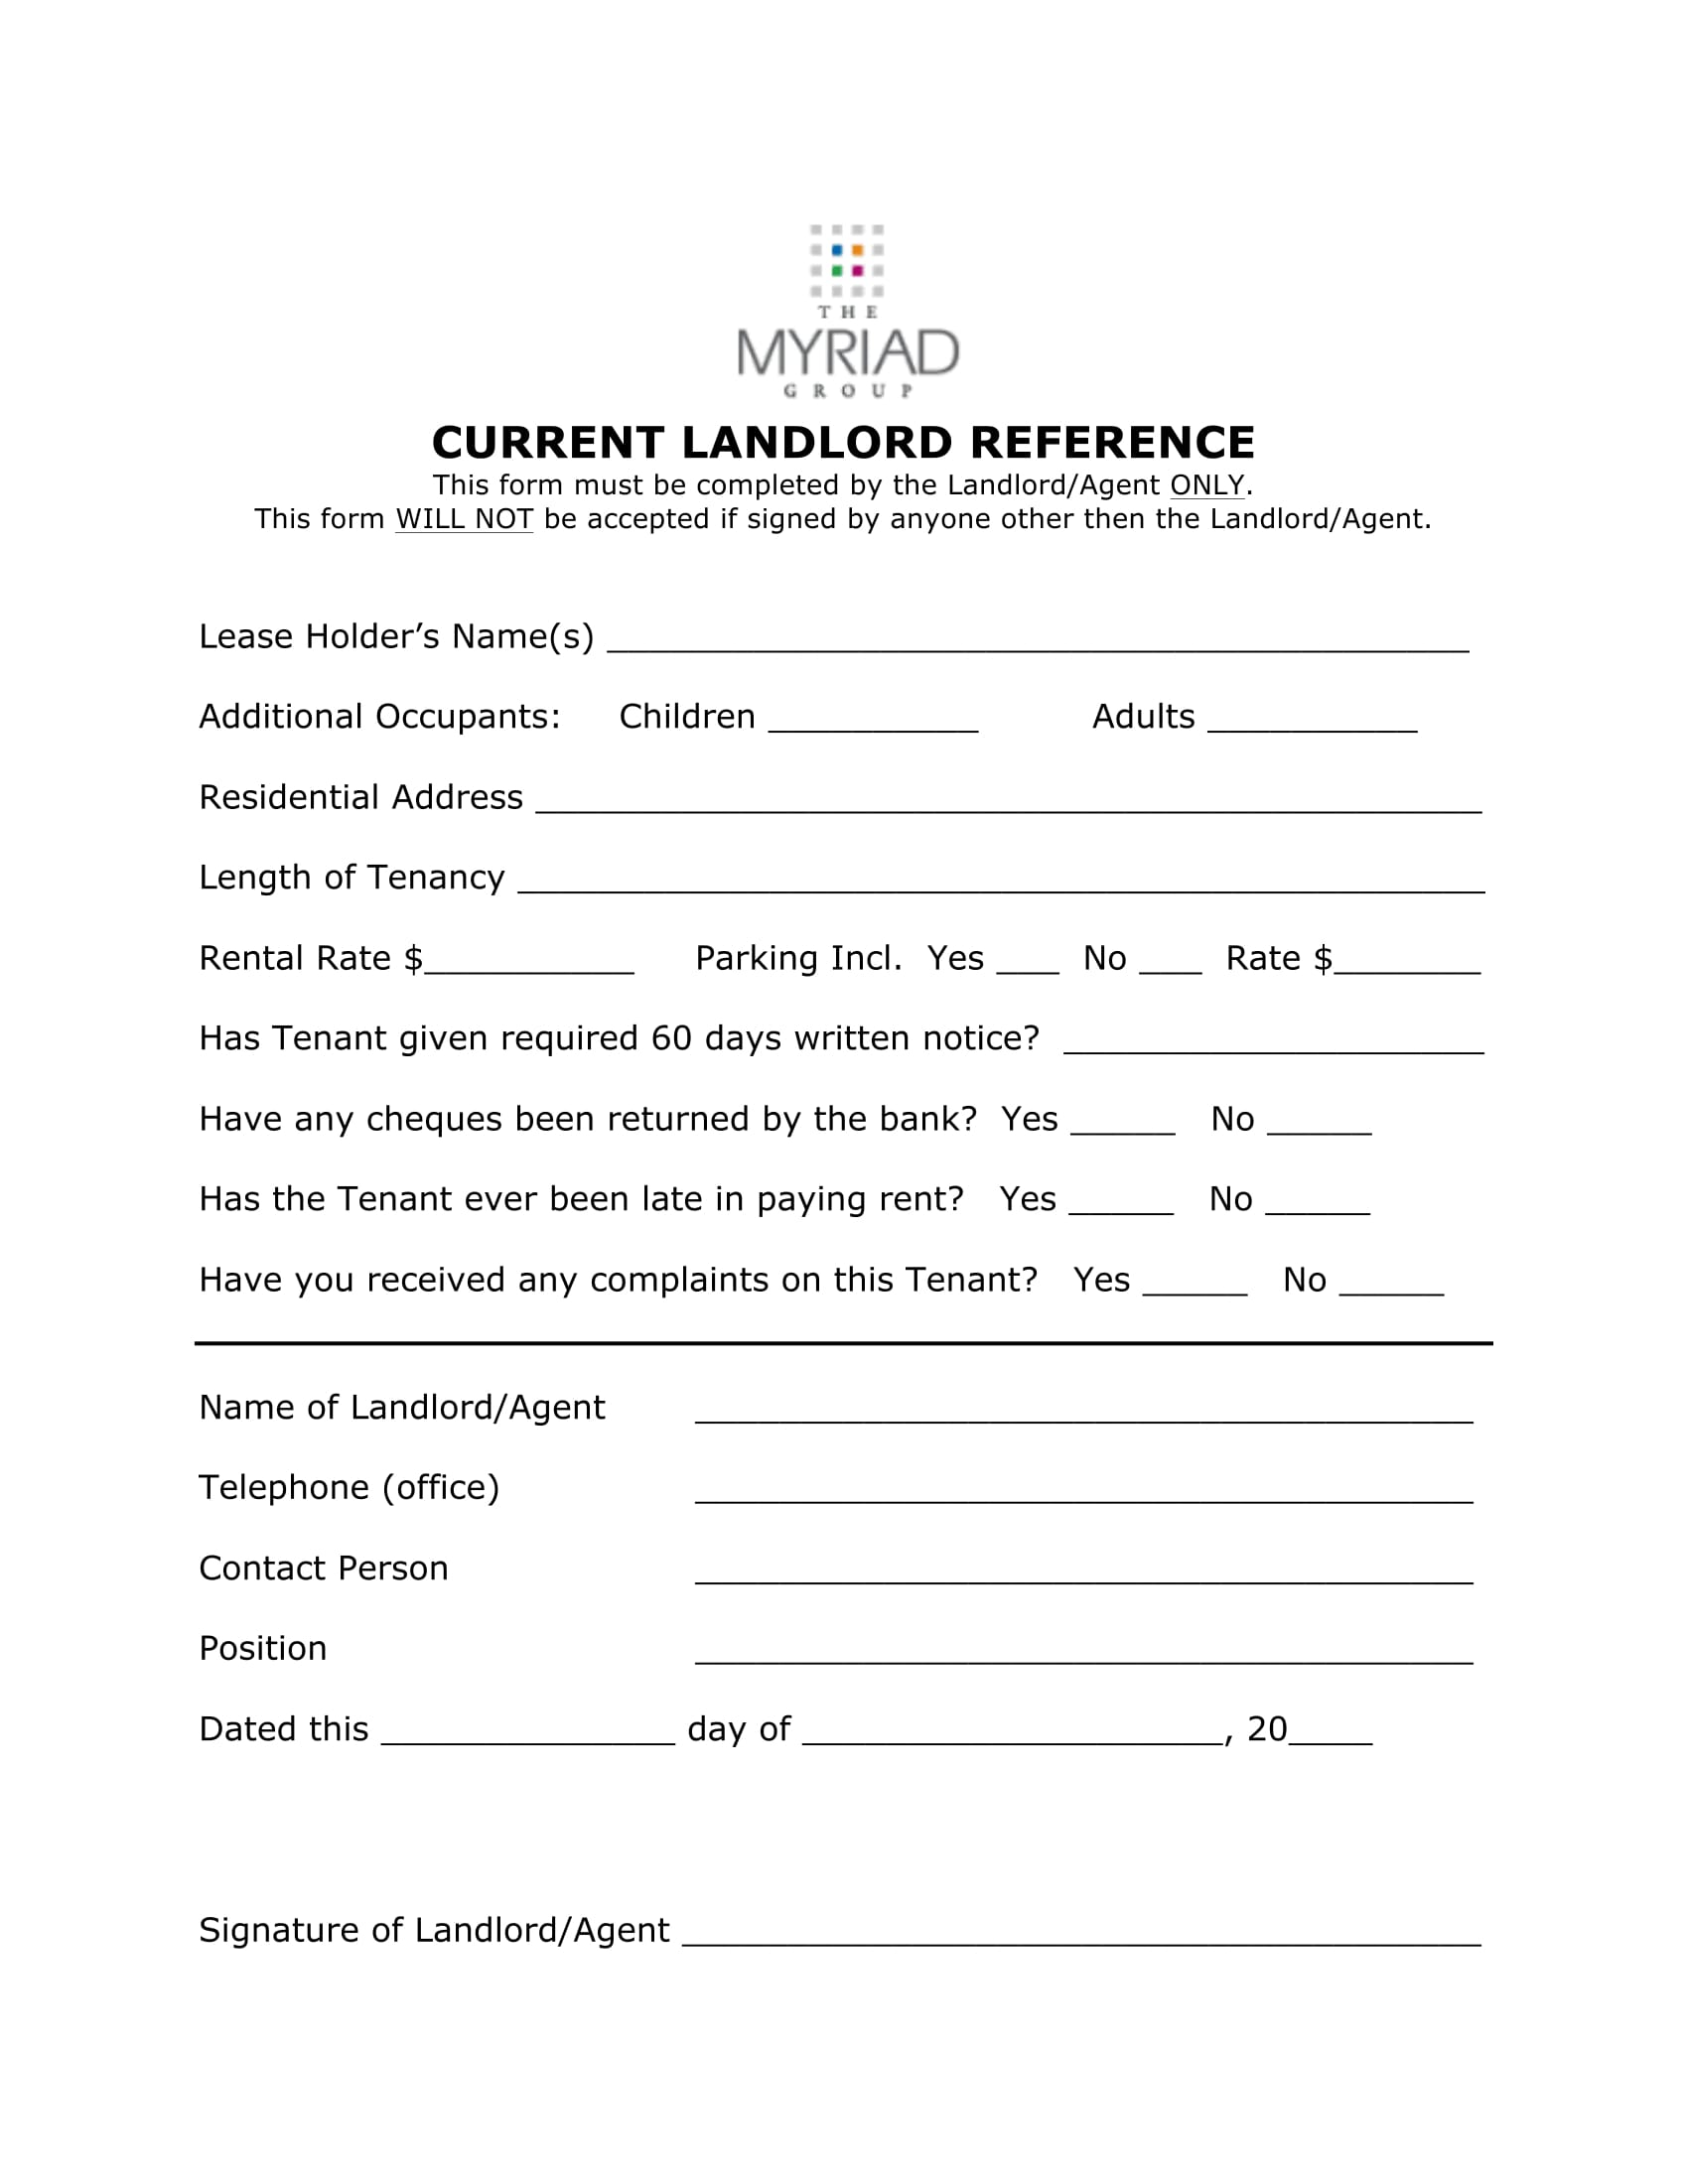 landlord reference request form 1